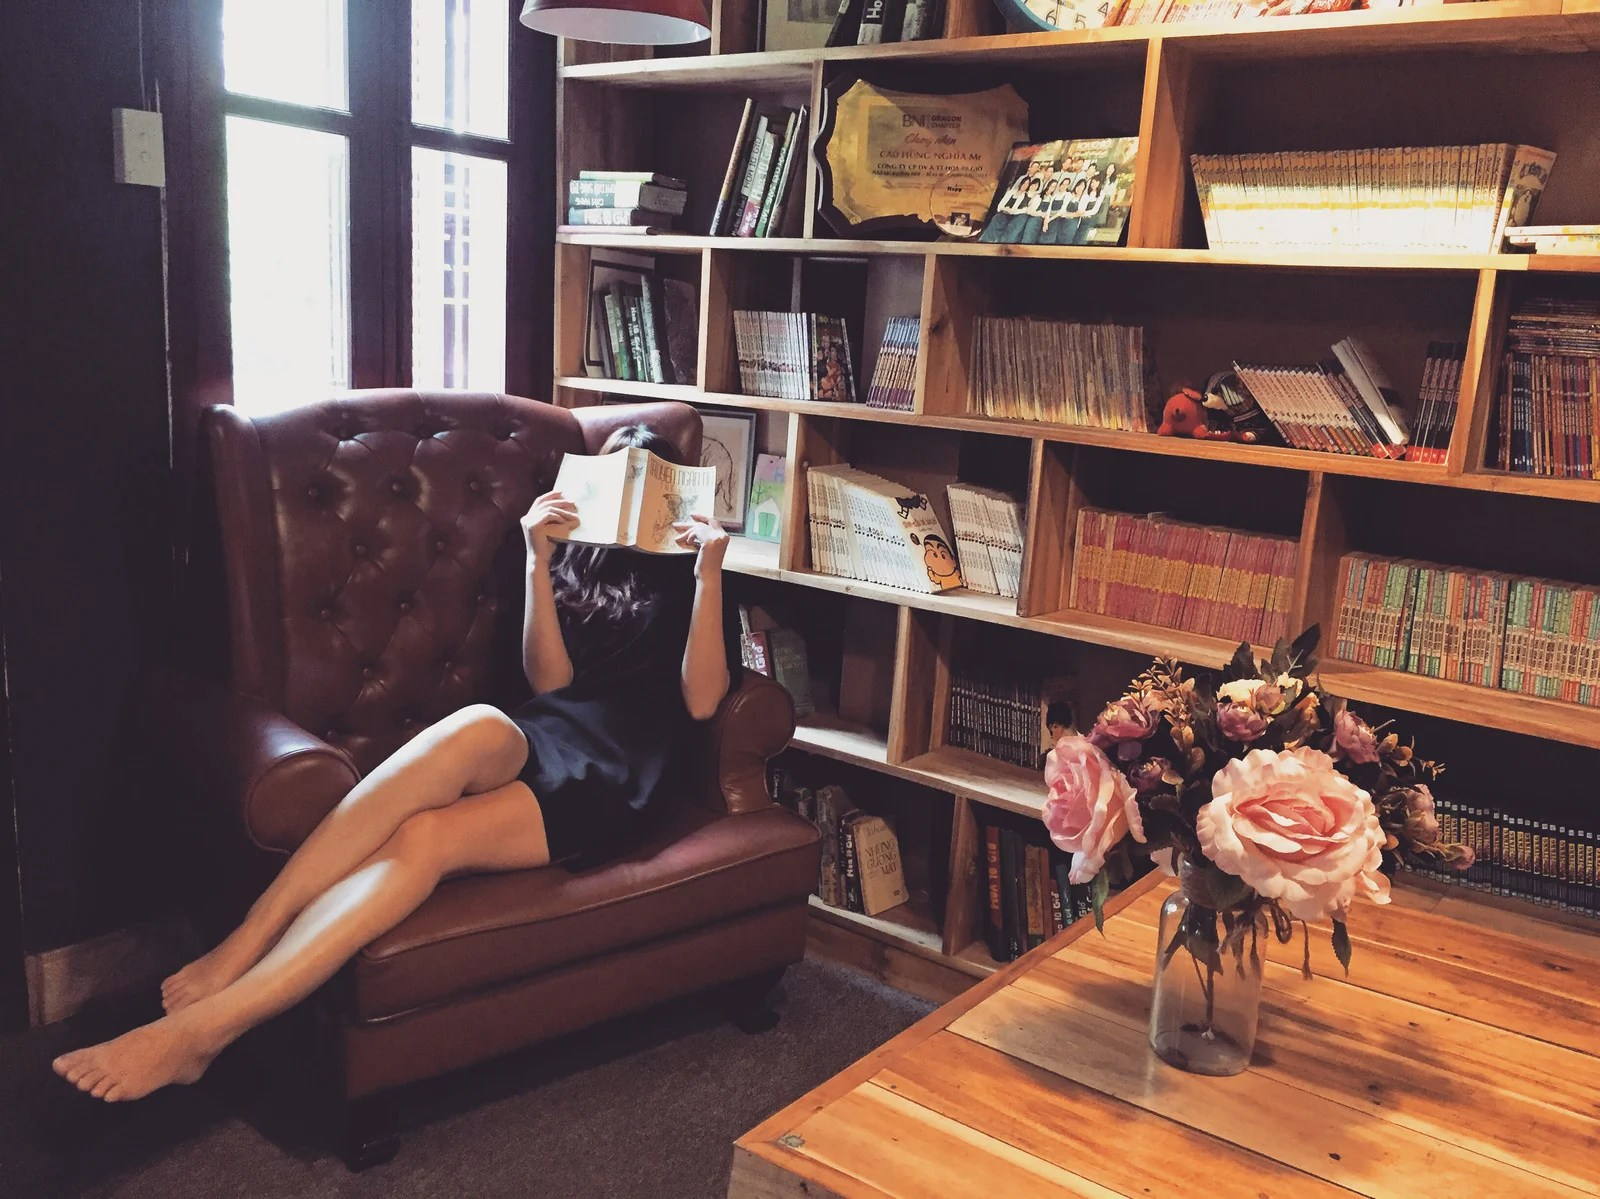 Woman In Black Mini Dress Sitting On Brown Leather Tufted